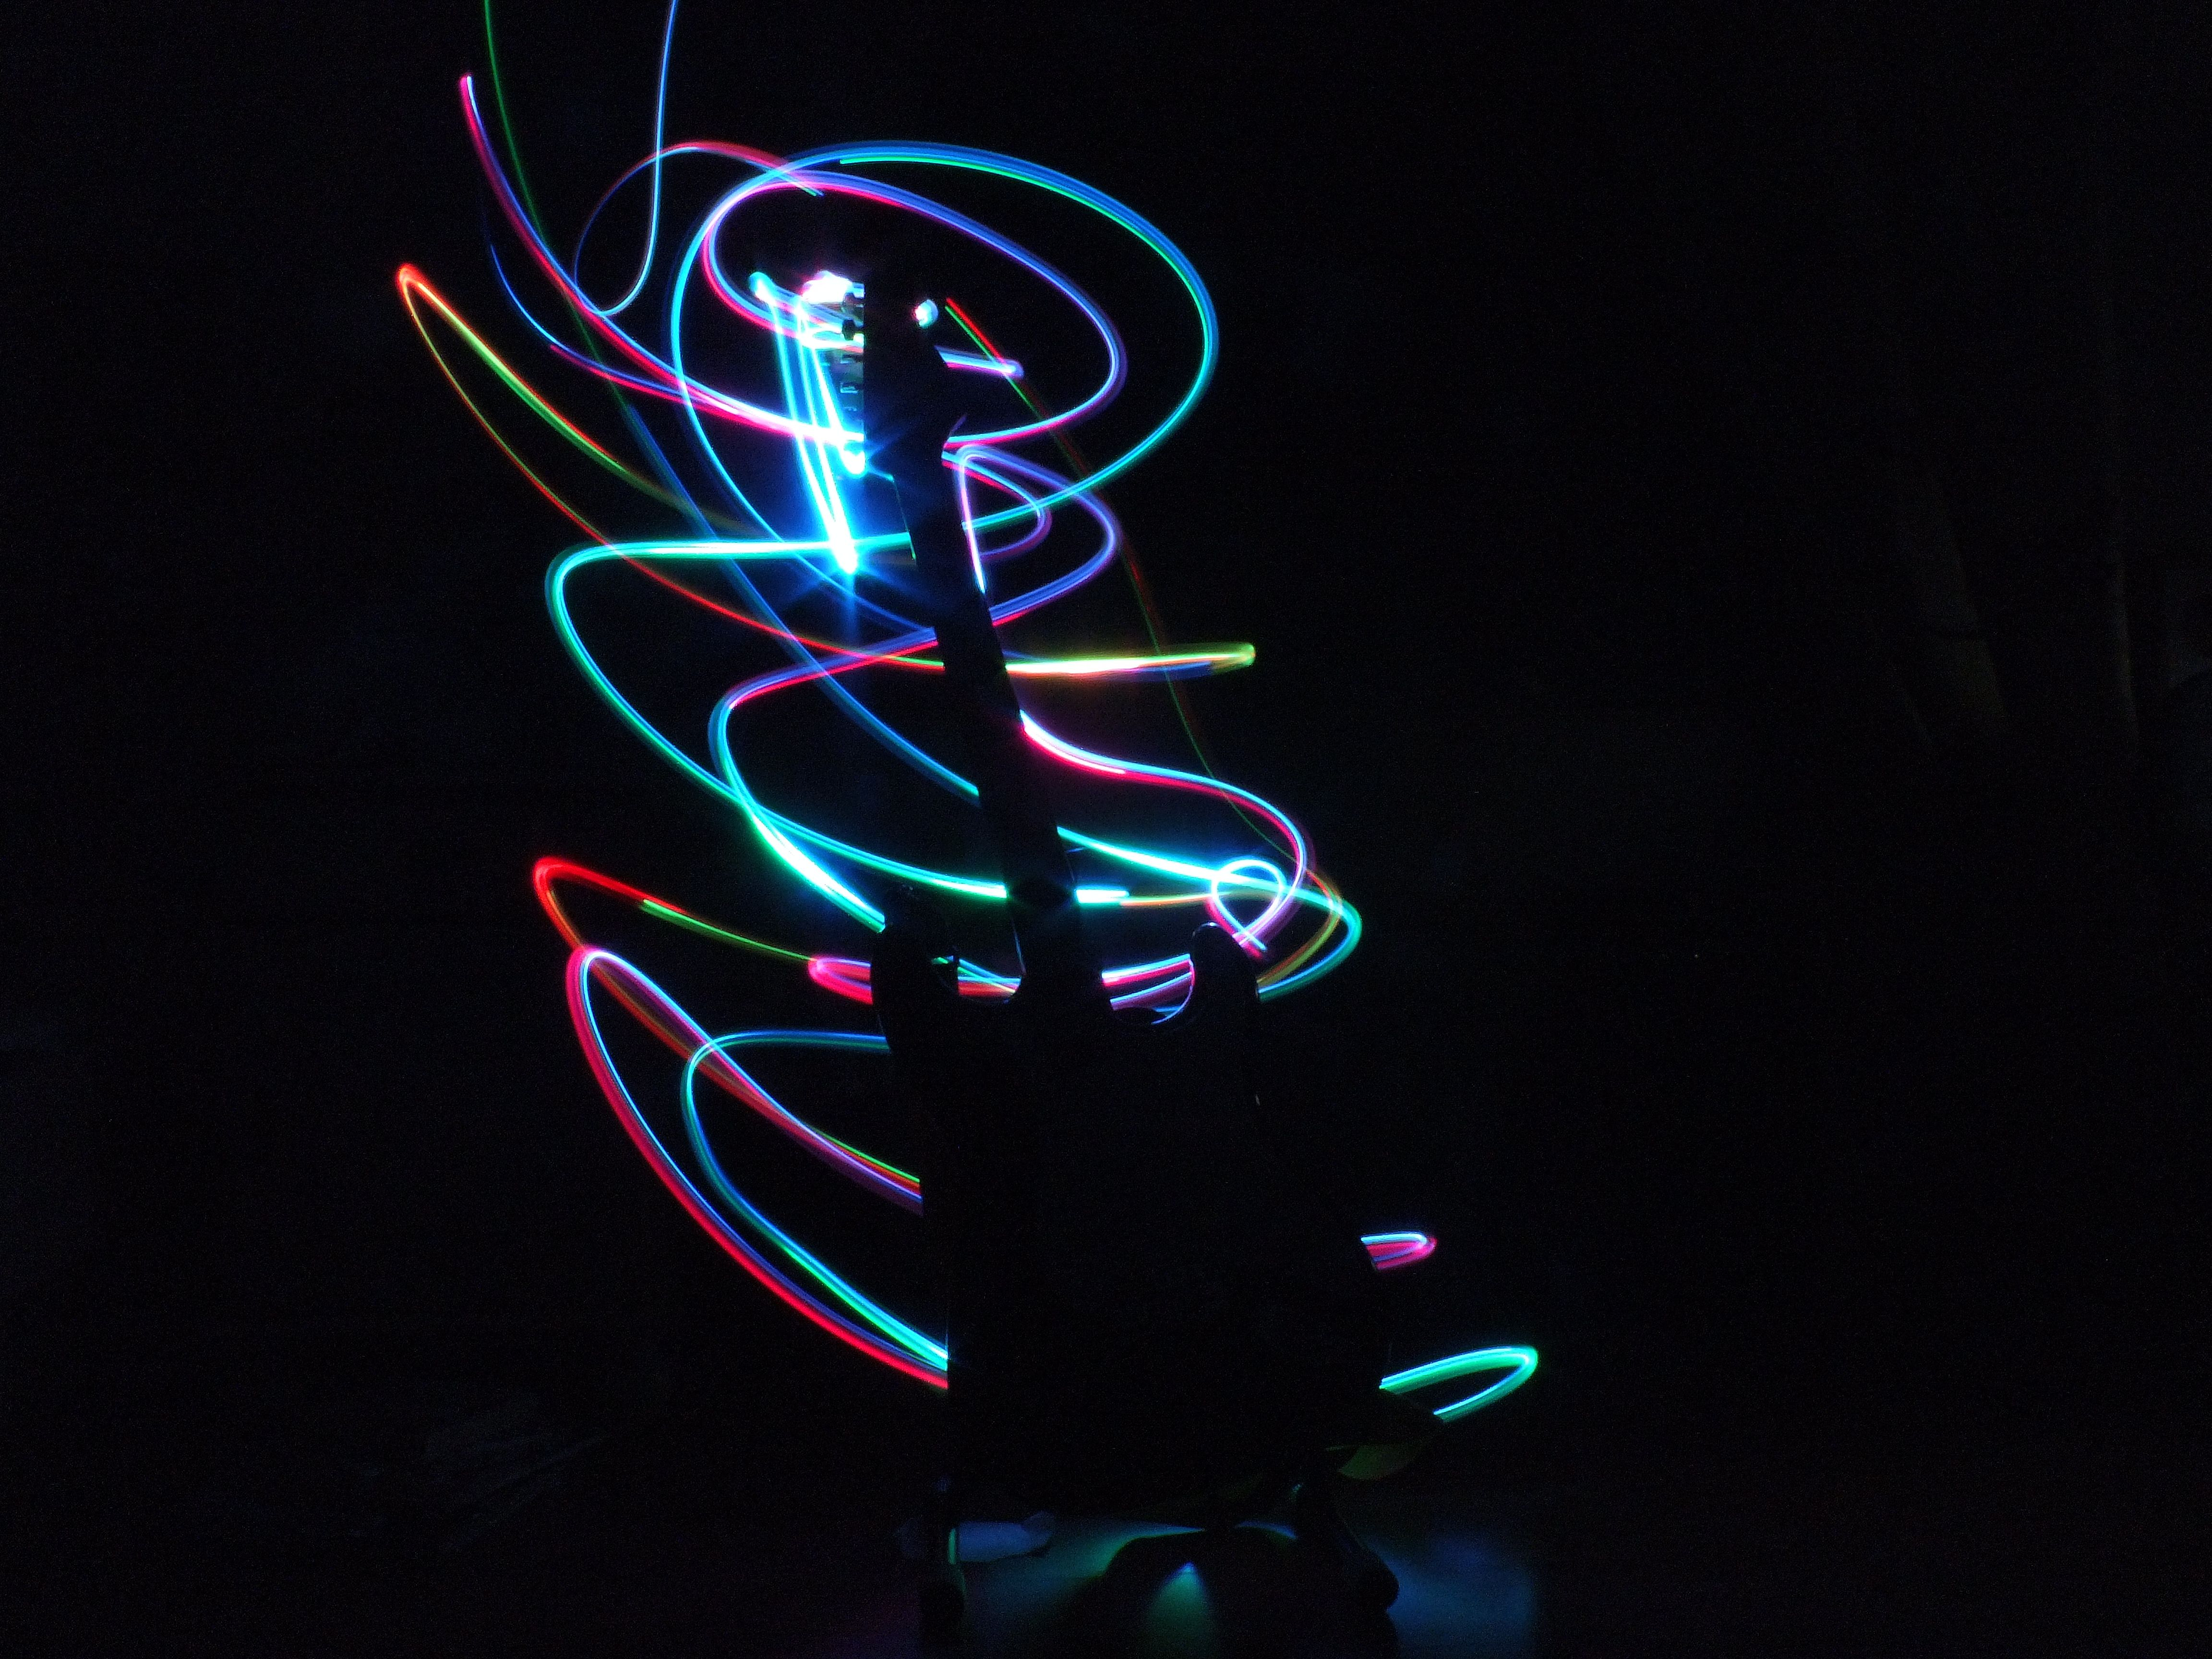 Guitar silhouette. Made with slow shutter time and a light changing its colours while I wave it around, and of course its done in a dark room.